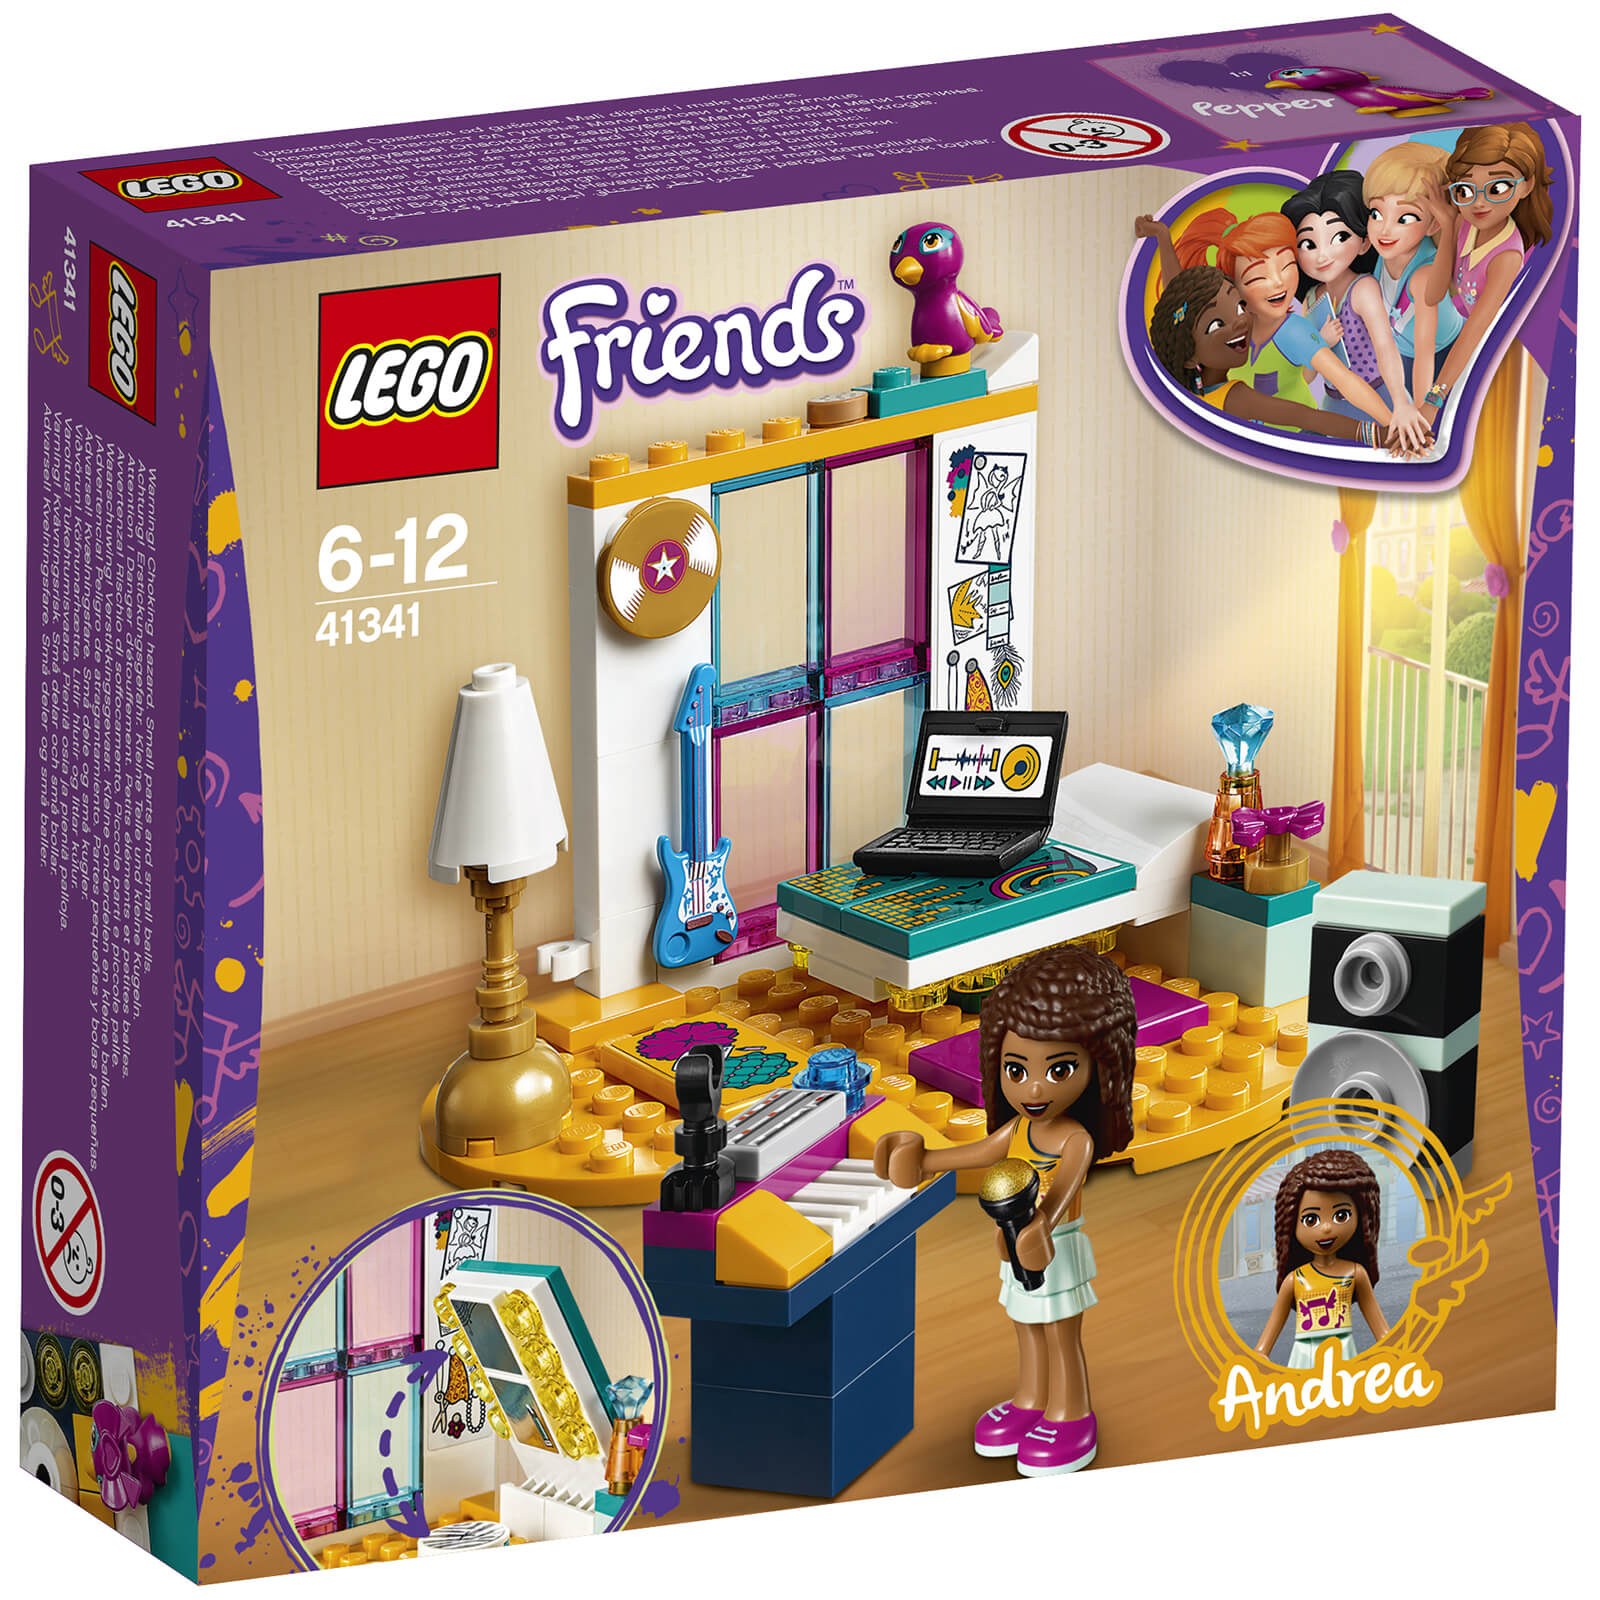 LEGO Friends: Andrea